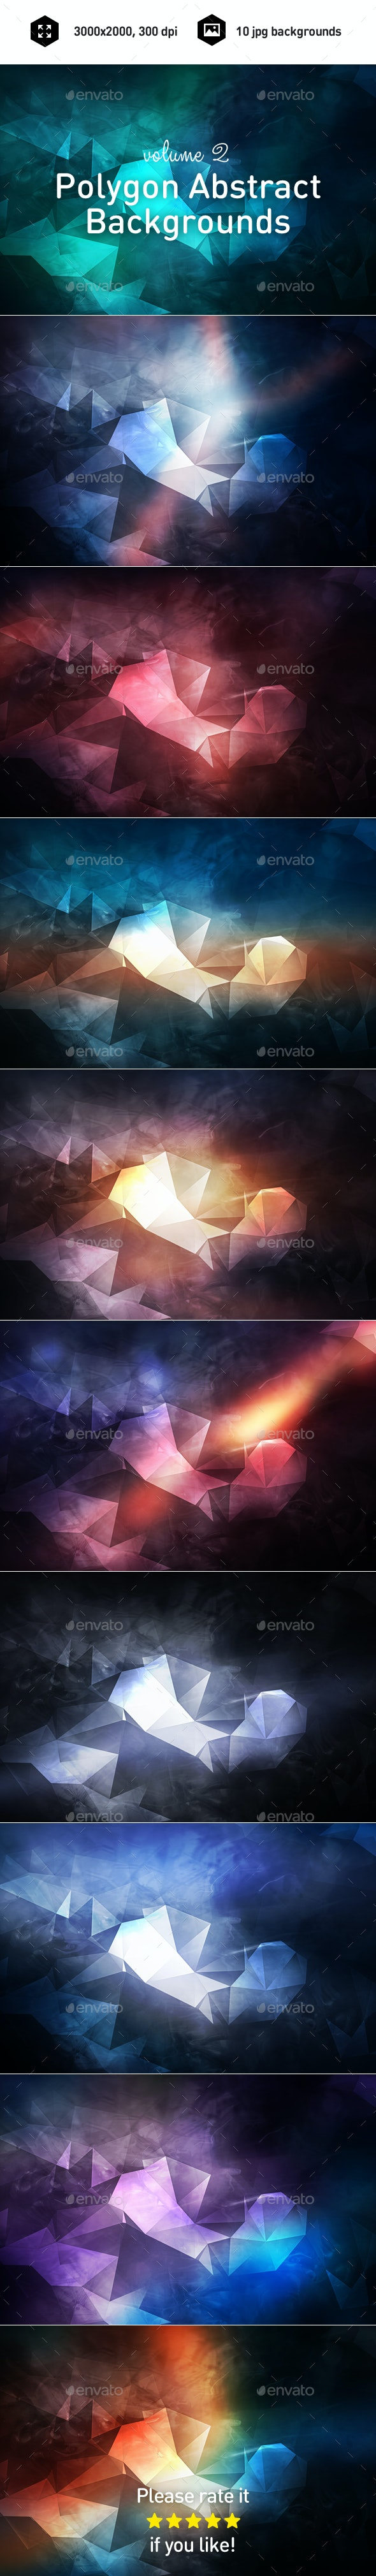 Polygon Abstract Backgrounds vol.2 - Abstract Backgrounds